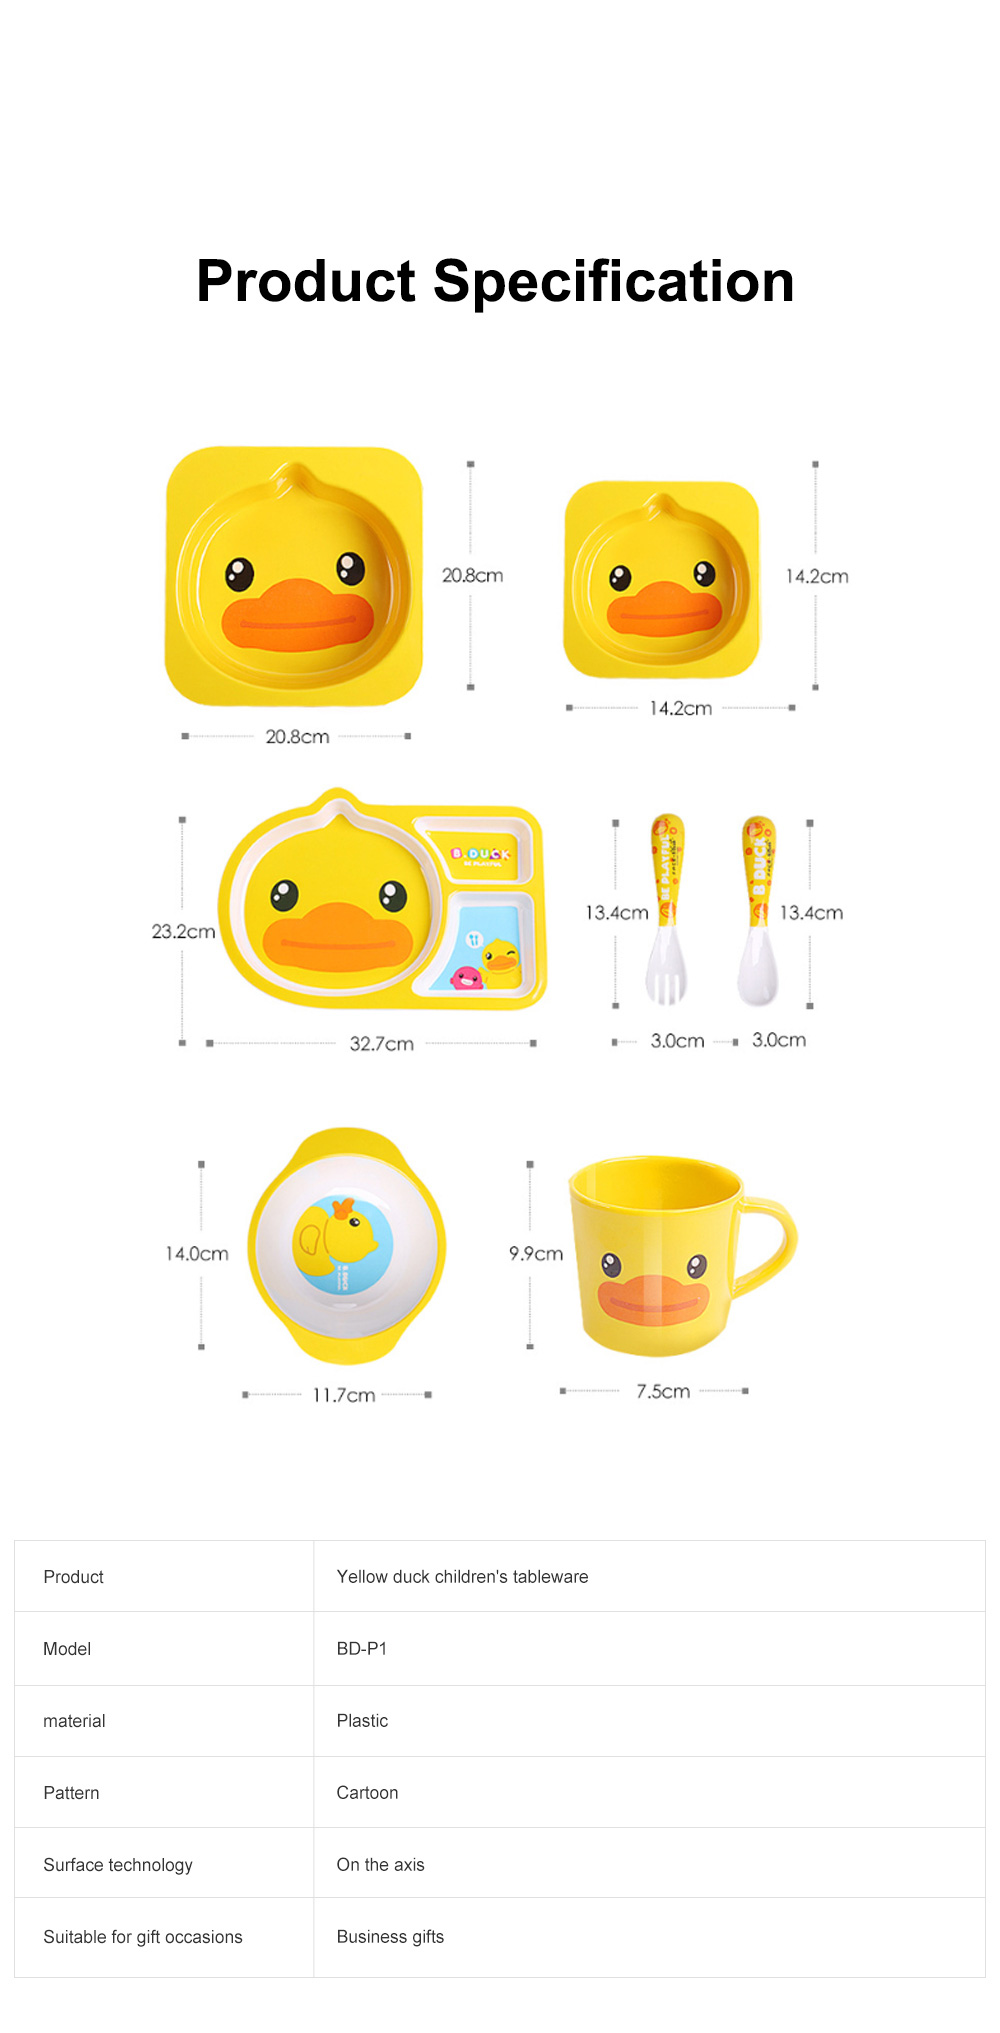 Small Yellow Duck Children's Tableware Baby Multi-function Cute Cartoon Plate Baby Shatter-resistant Food Supplement Bowl Fork Spoon Set 6